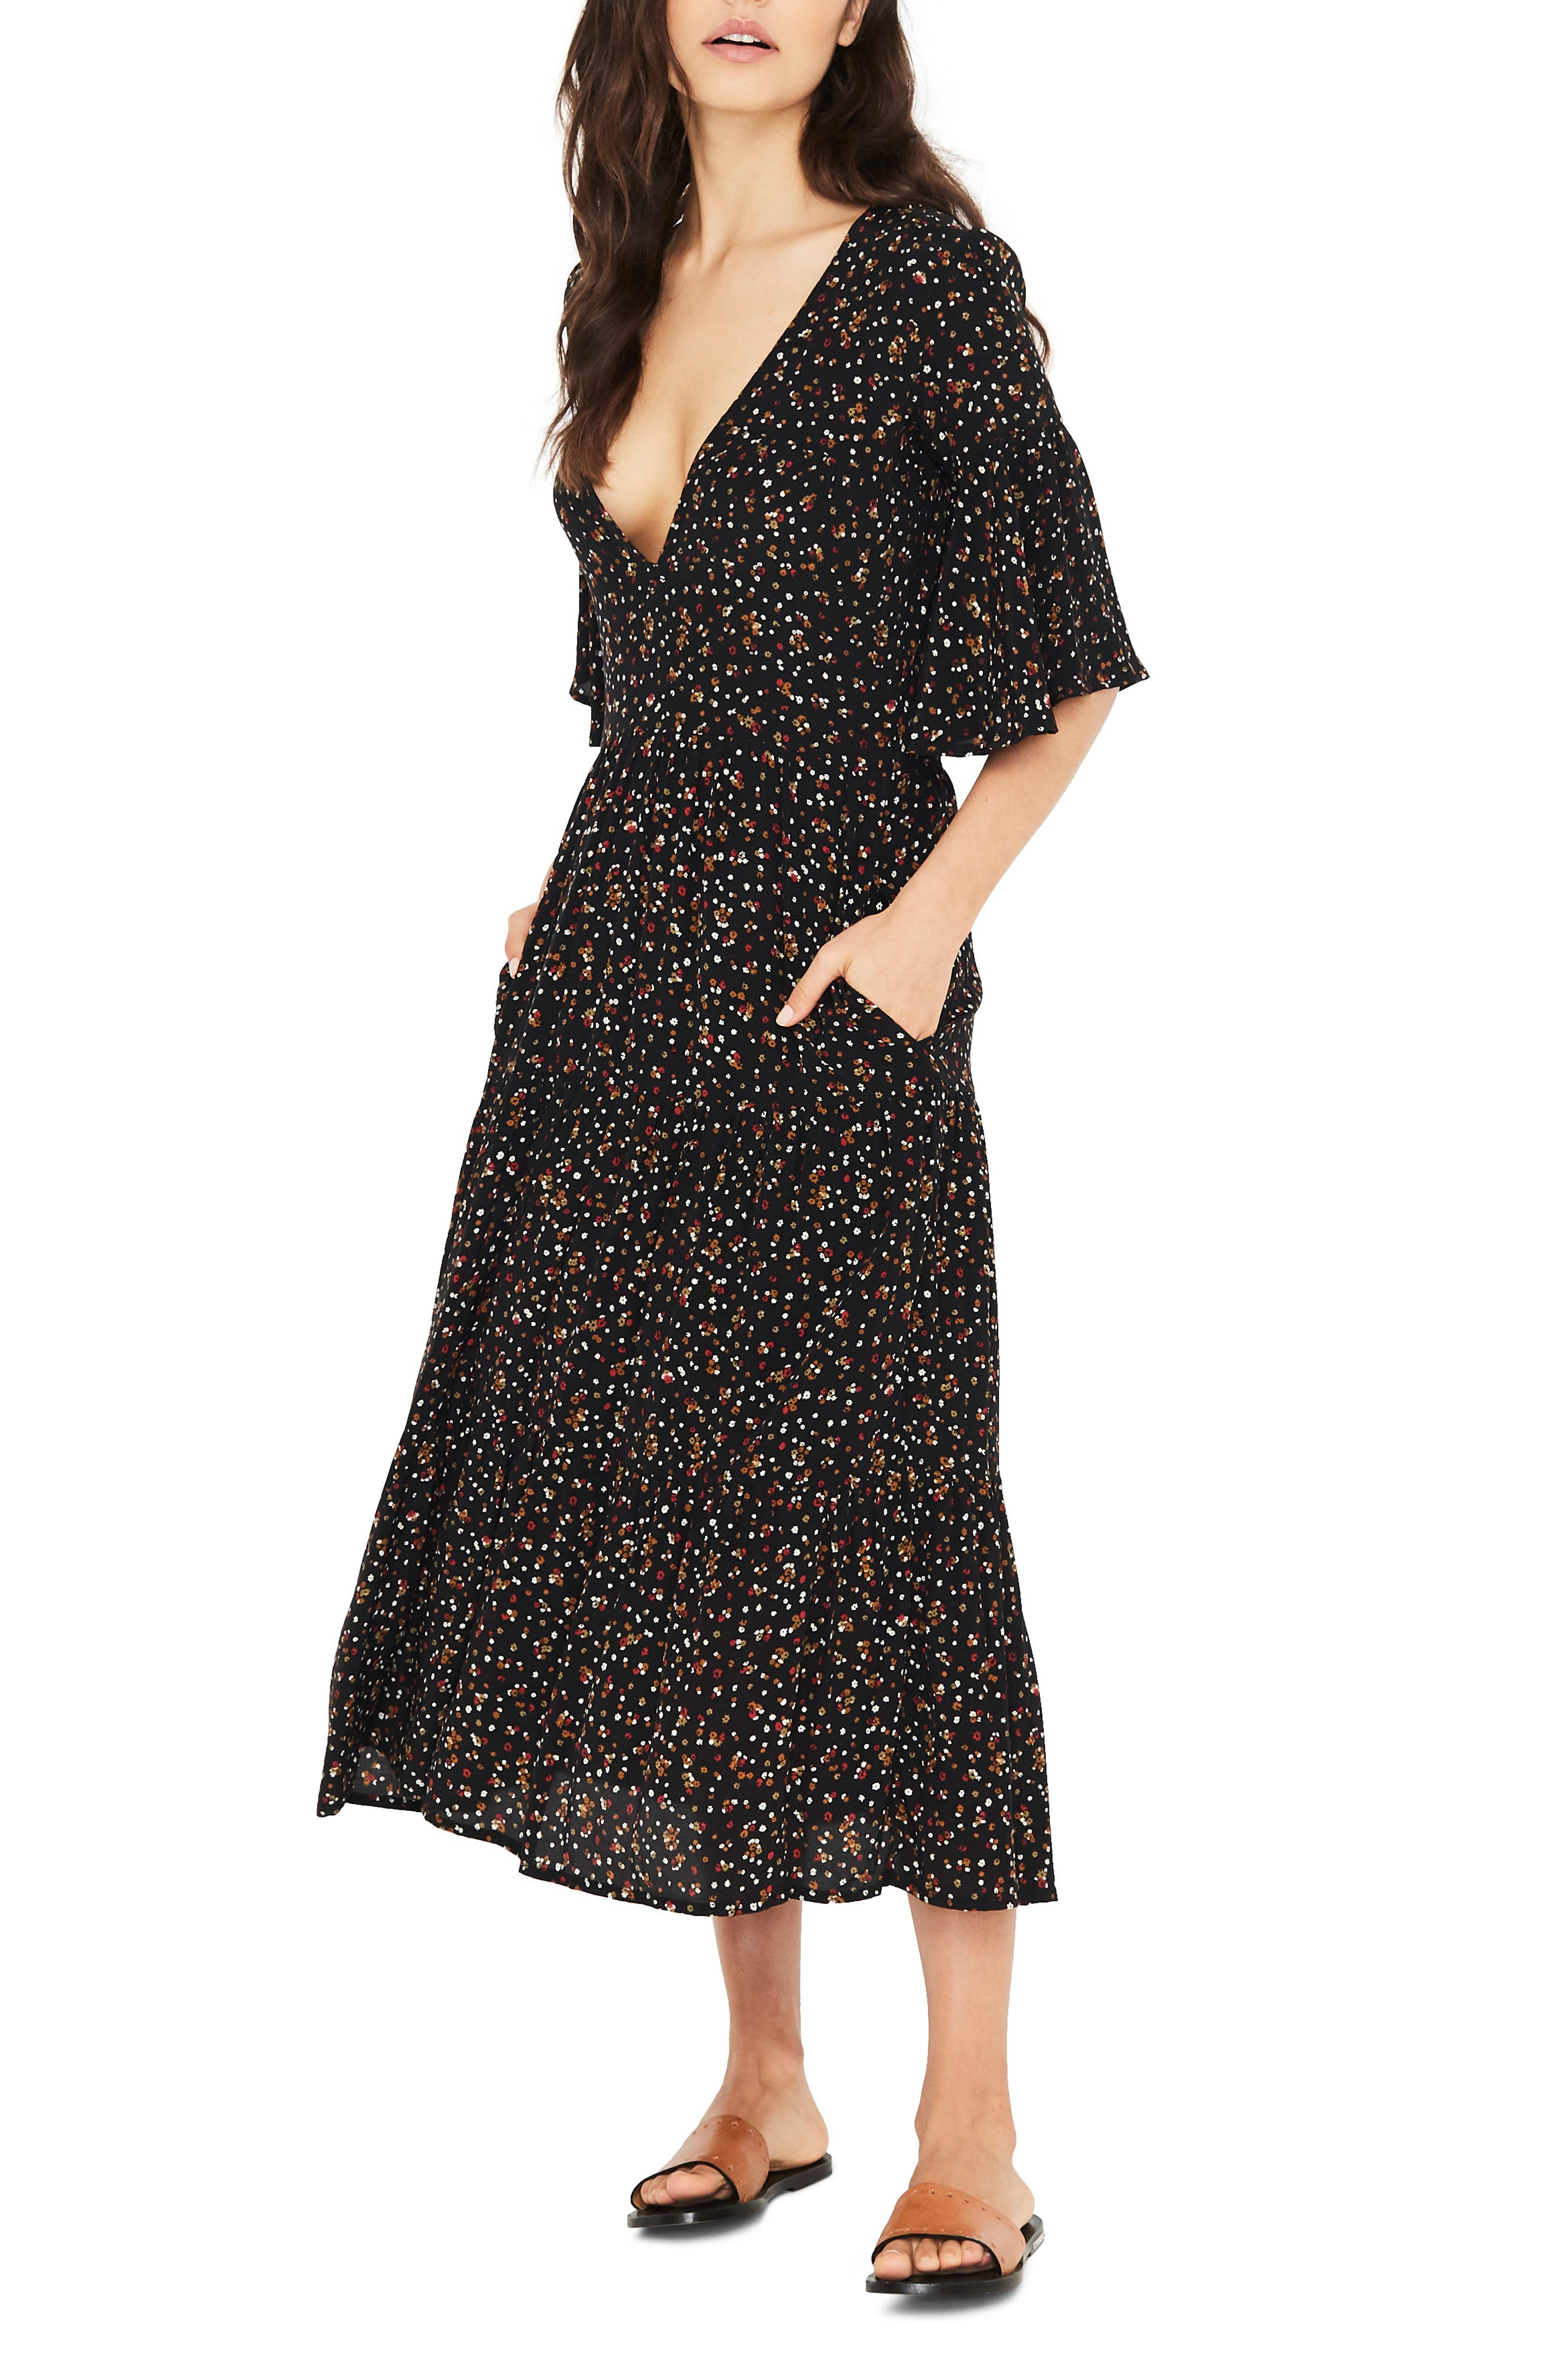 Melia Ditsy Floral Print Midi Dress,                             Alternate thumbnail 3, color,                             001